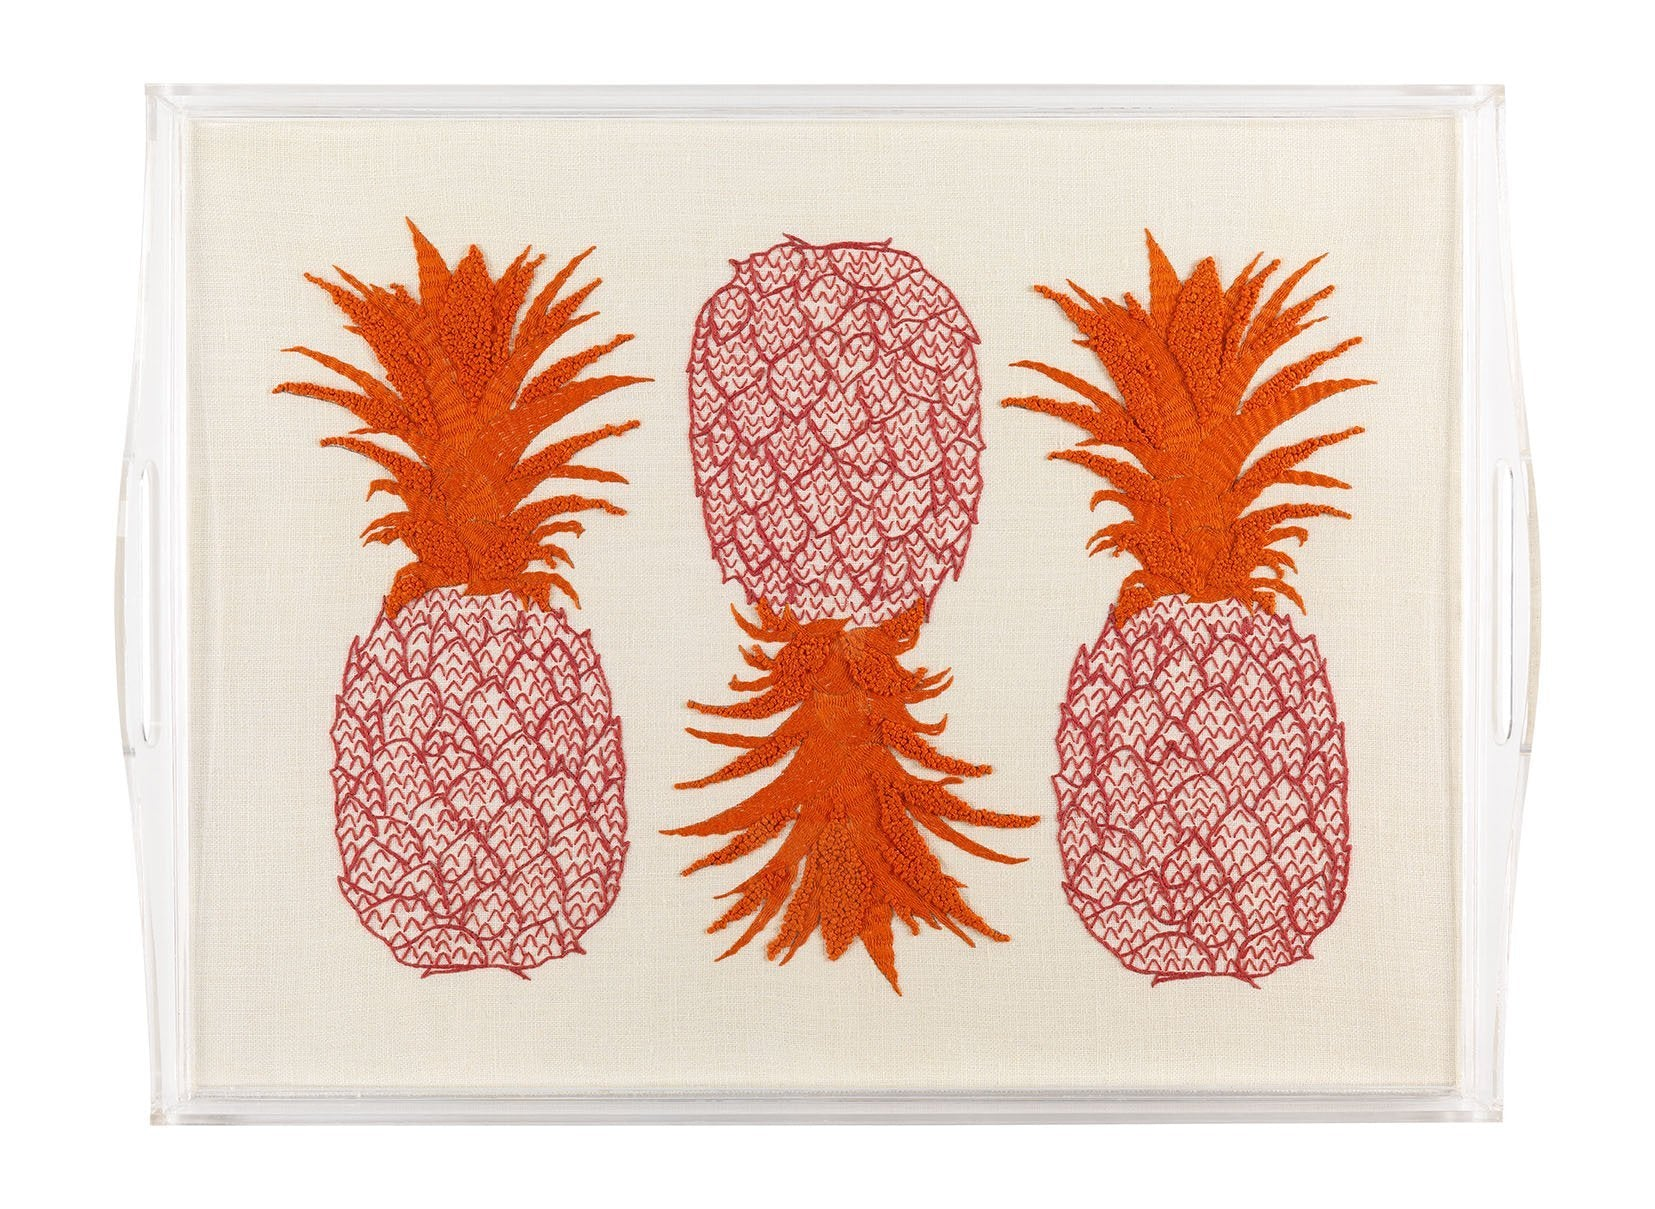 Melissa Wyndham for Fine Cell Work Pineapple Embroidered Tea Tray Pink and Orange